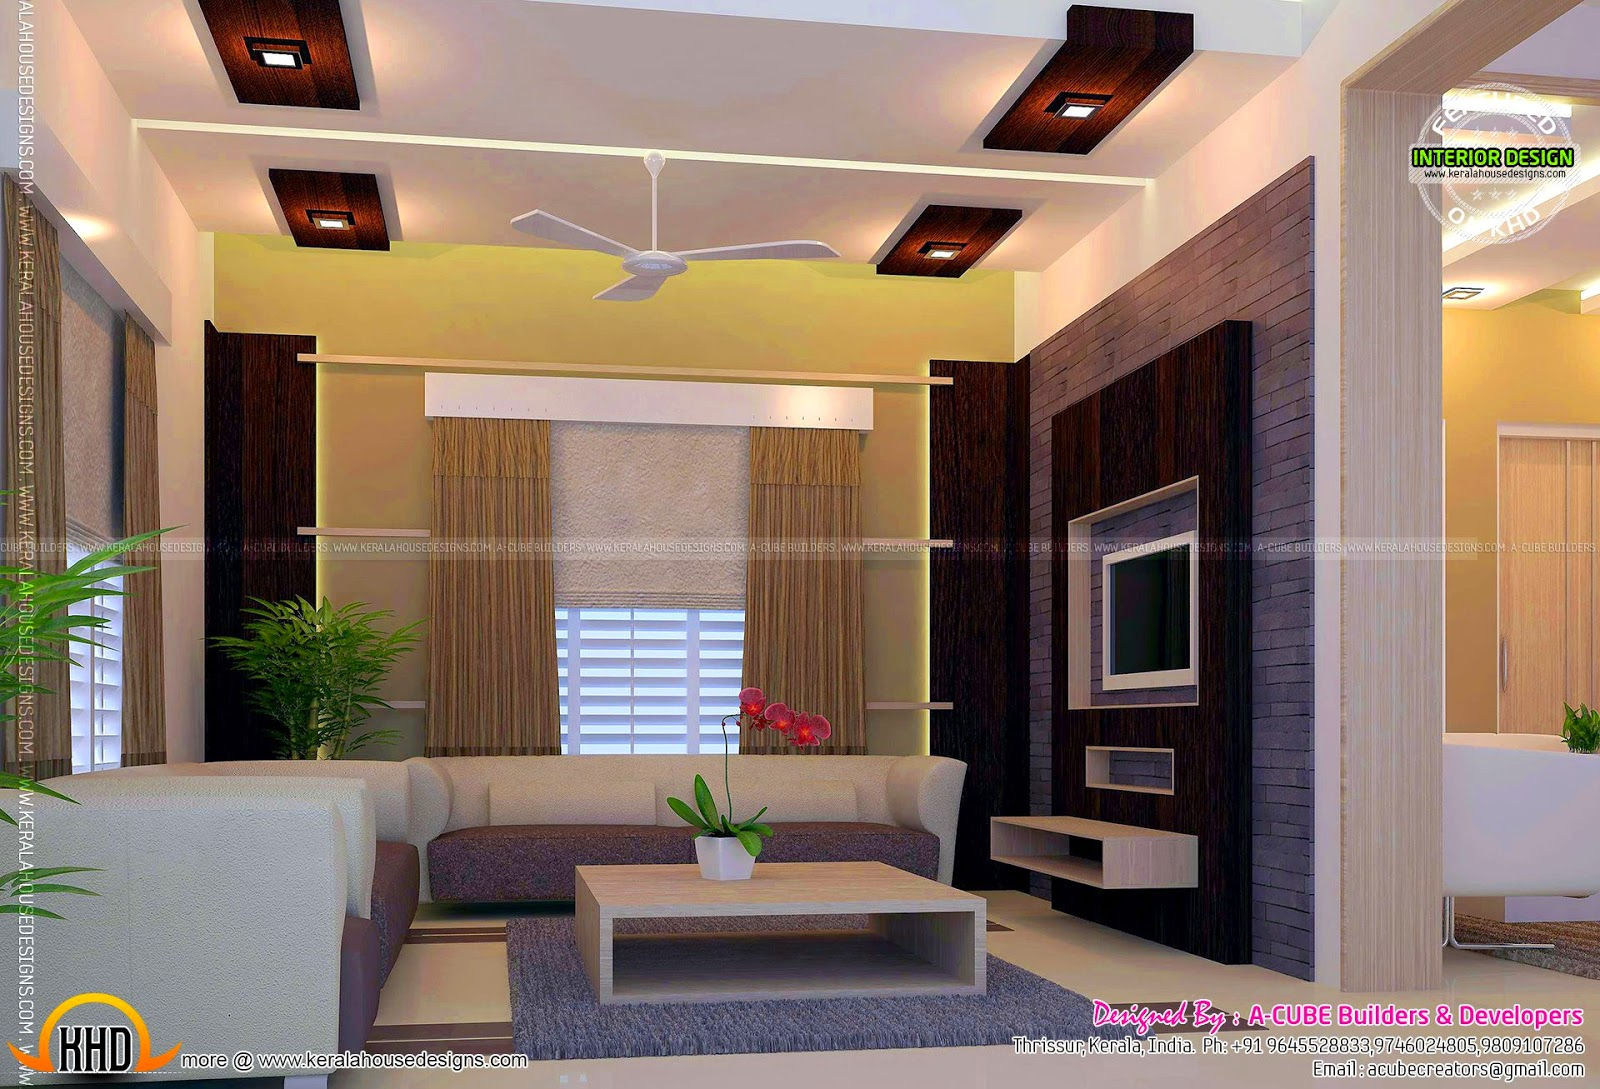 Kerala interior design ideas kerala home design and Interiors for homes